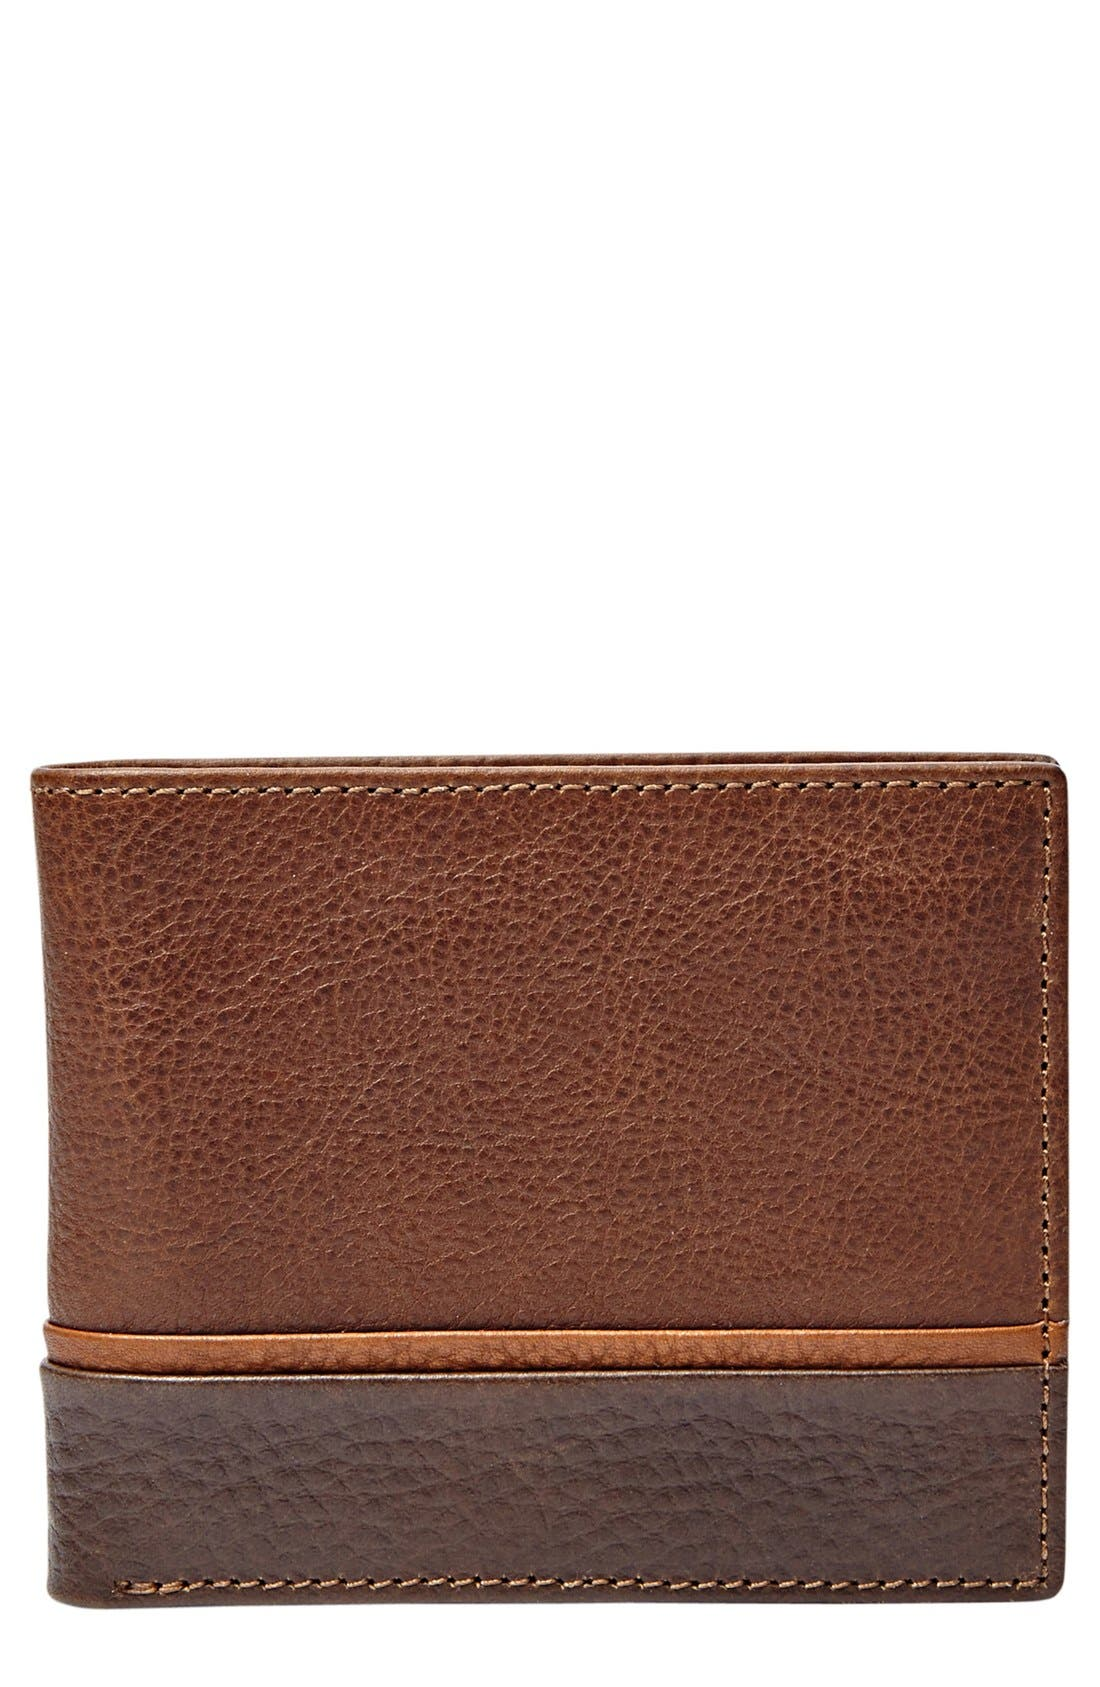 FOSSIL Ian Leather Bifold Wallet